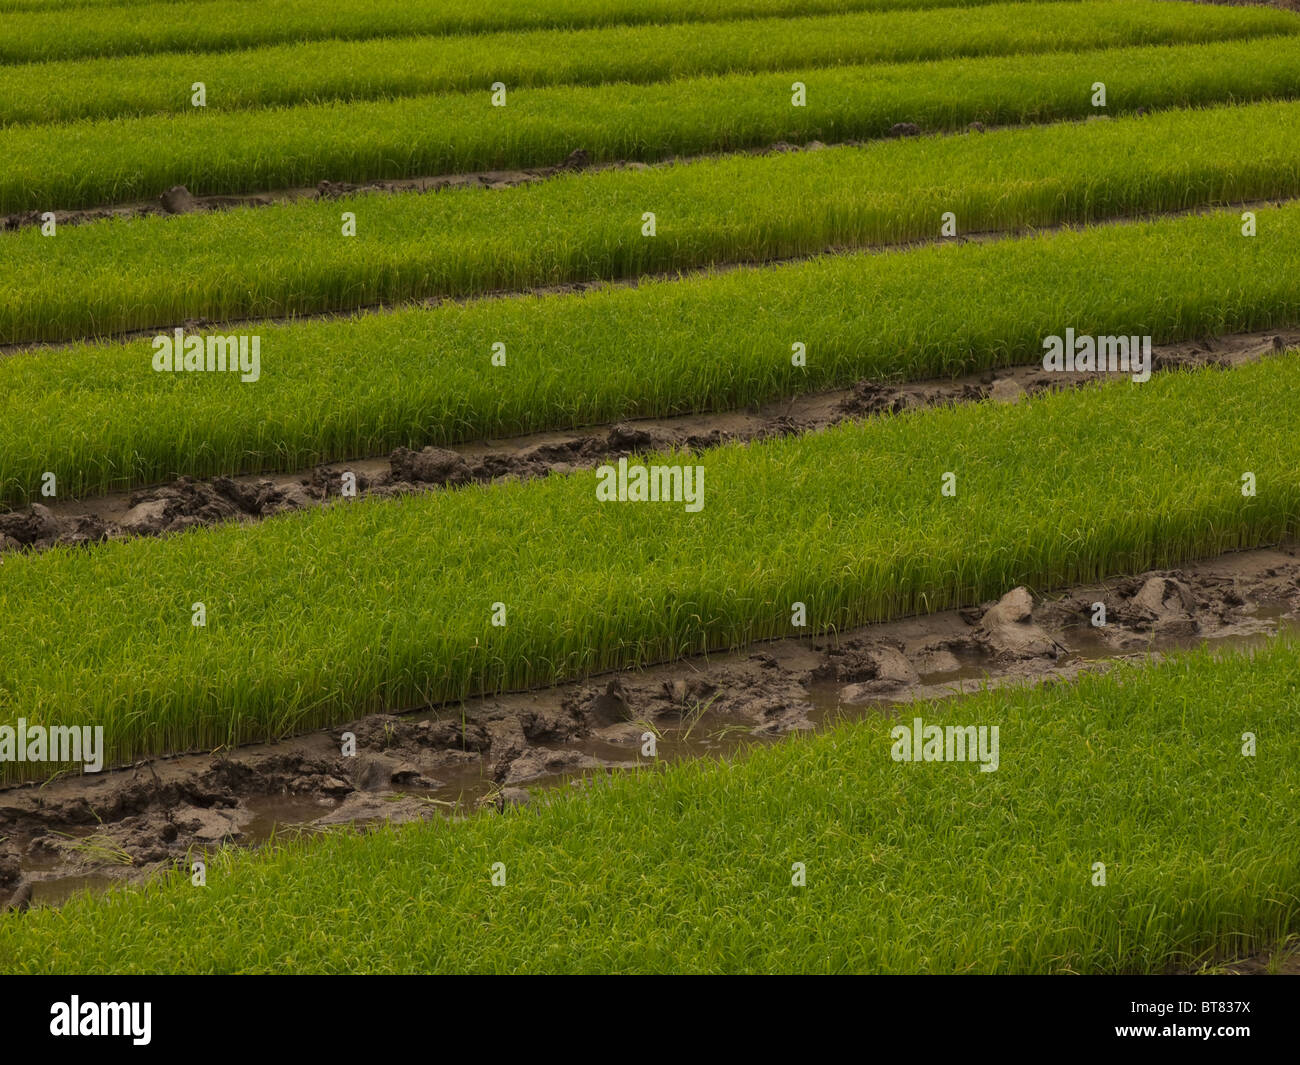 Rice field in China - Stock Image